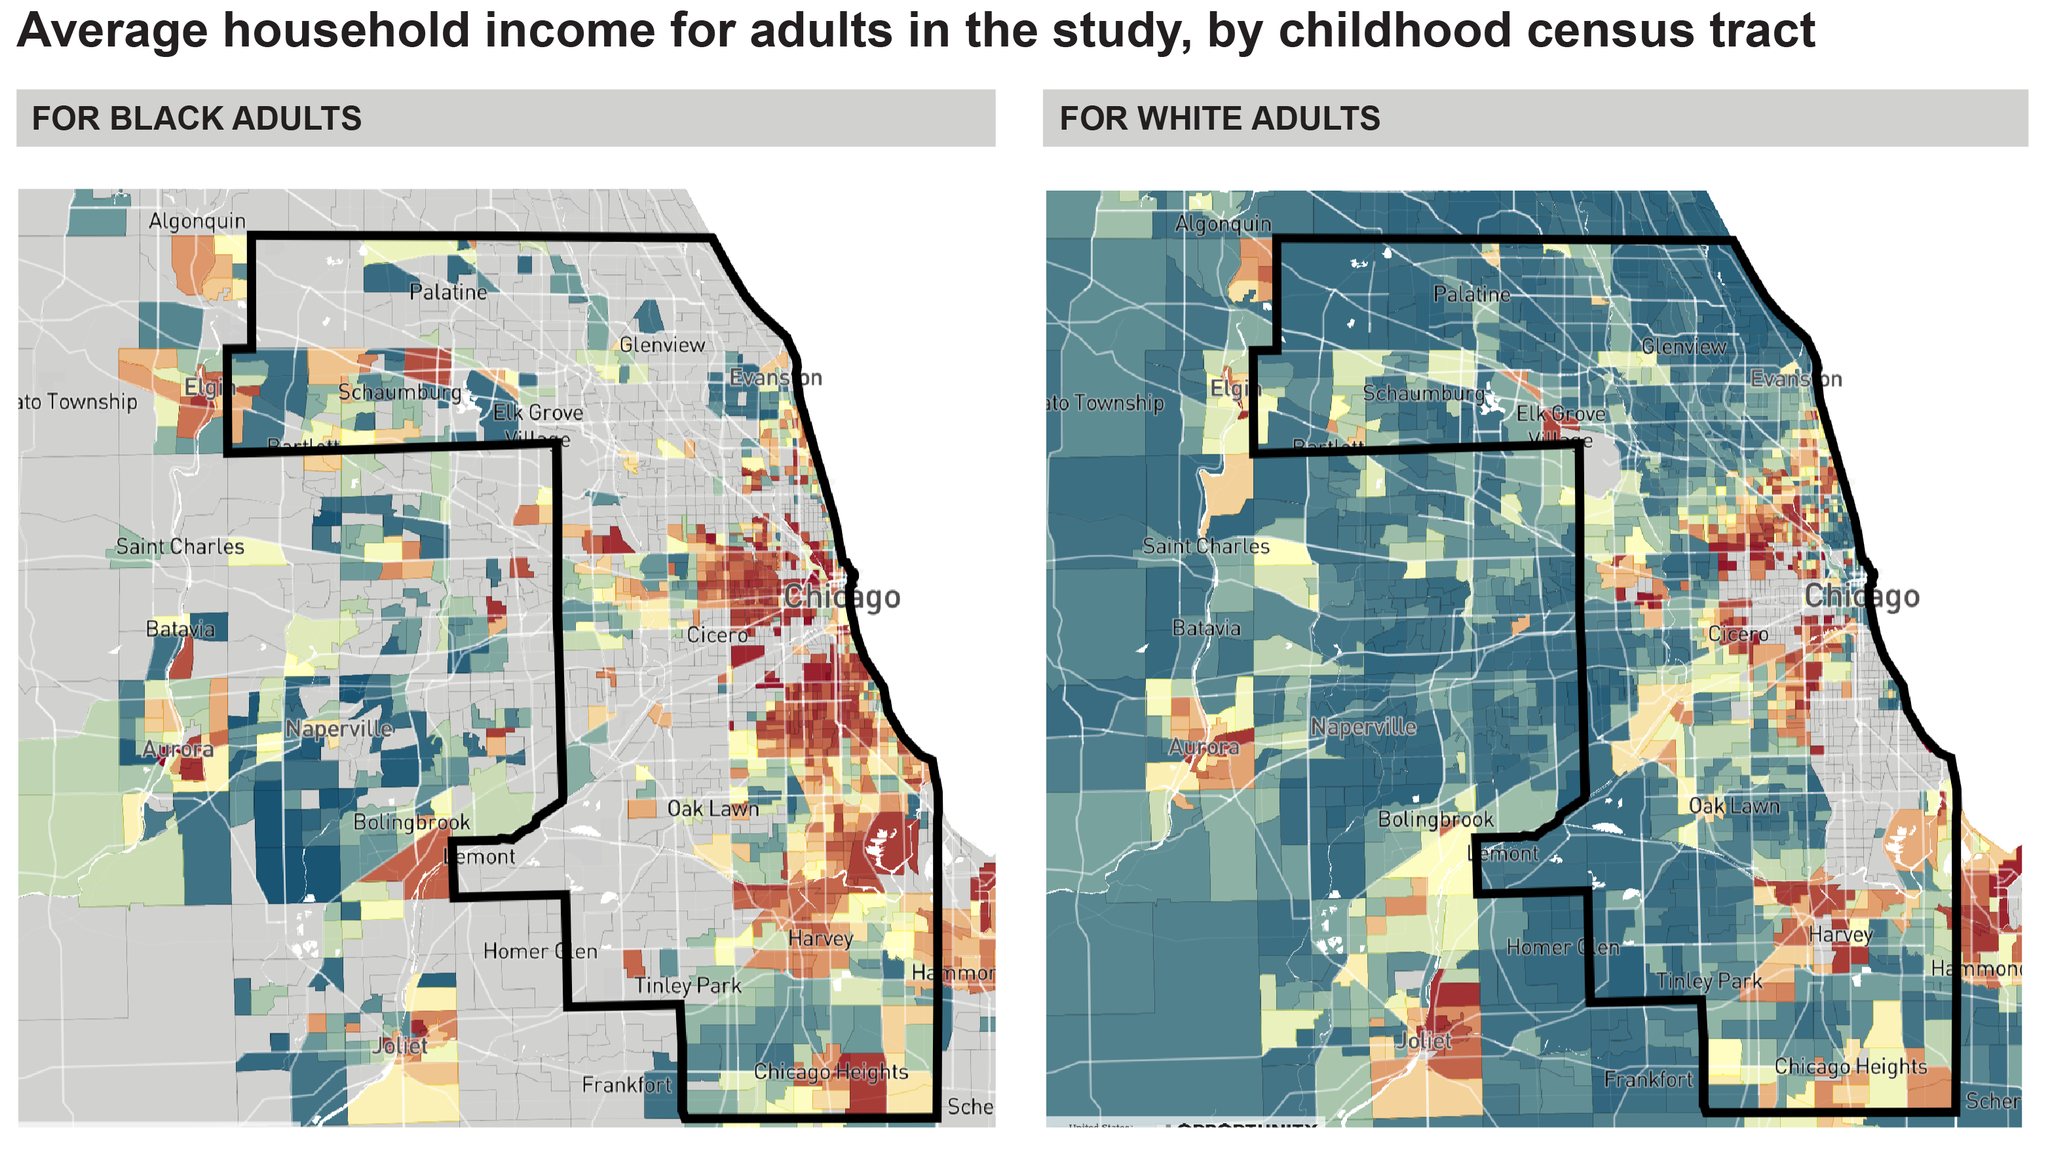 Opportunity Atlas Maps Out Areas Of Opportunity Poverty In Chicago